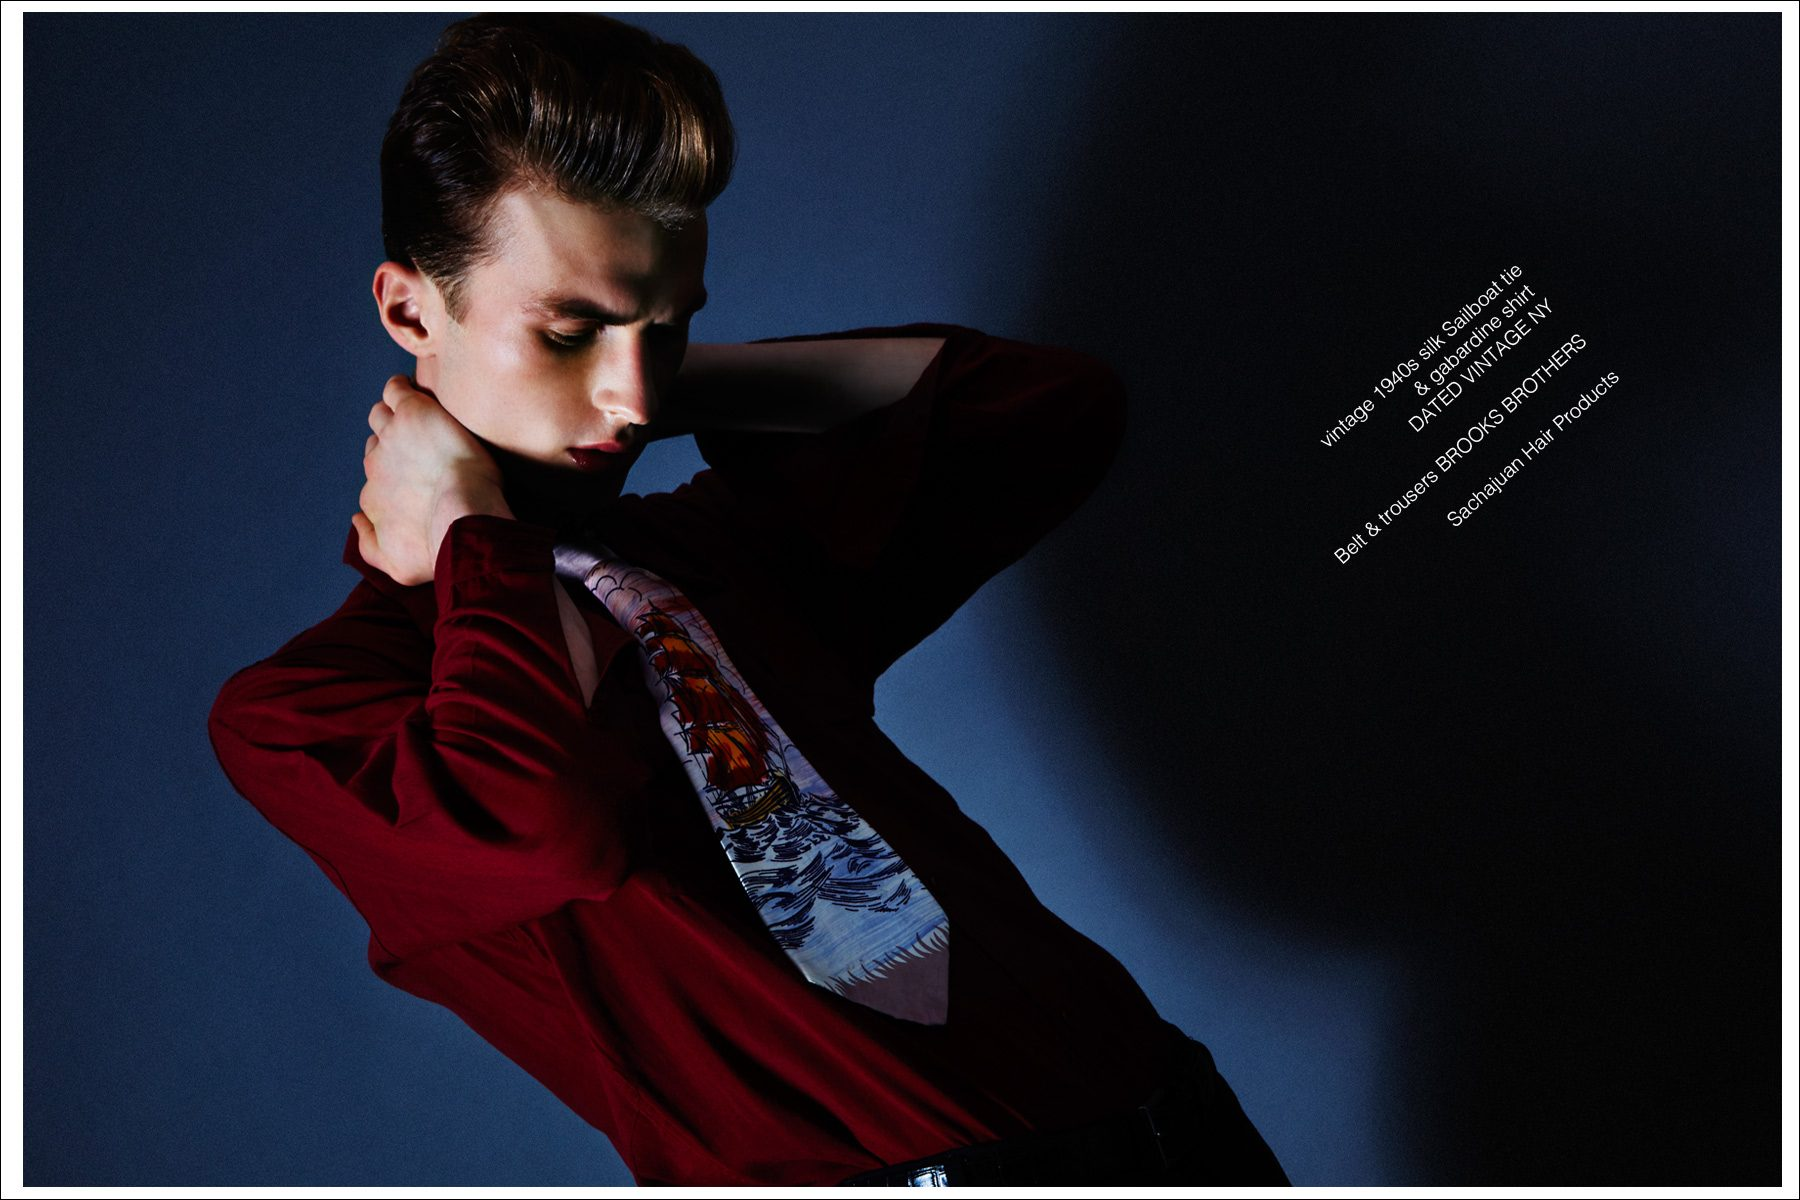 Model Zach Troost stars in Ponyboy magazine vintage menswear editorial, photographed by Alexander Thompson, with styling by Antonio Abrego for Dated Vintage NY.